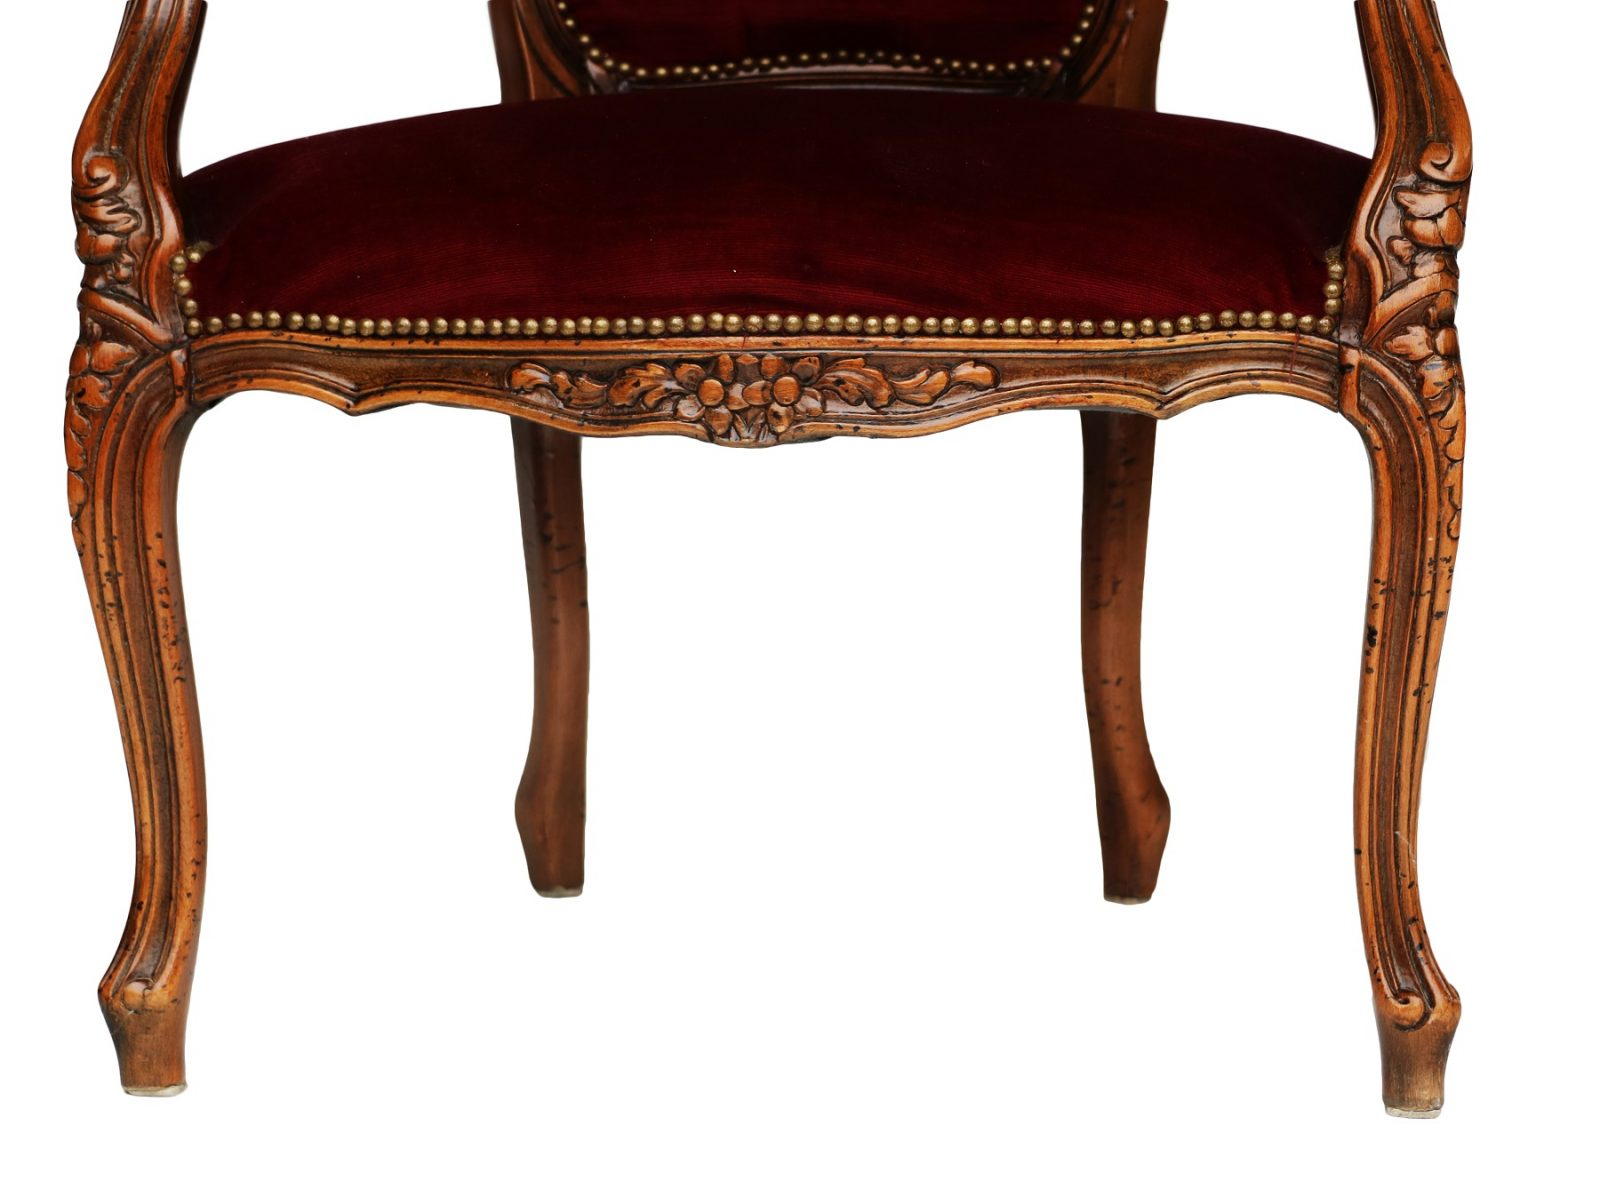 french louis xv style walnut and upholstered fauteuil. Black Bedroom Furniture Sets. Home Design Ideas